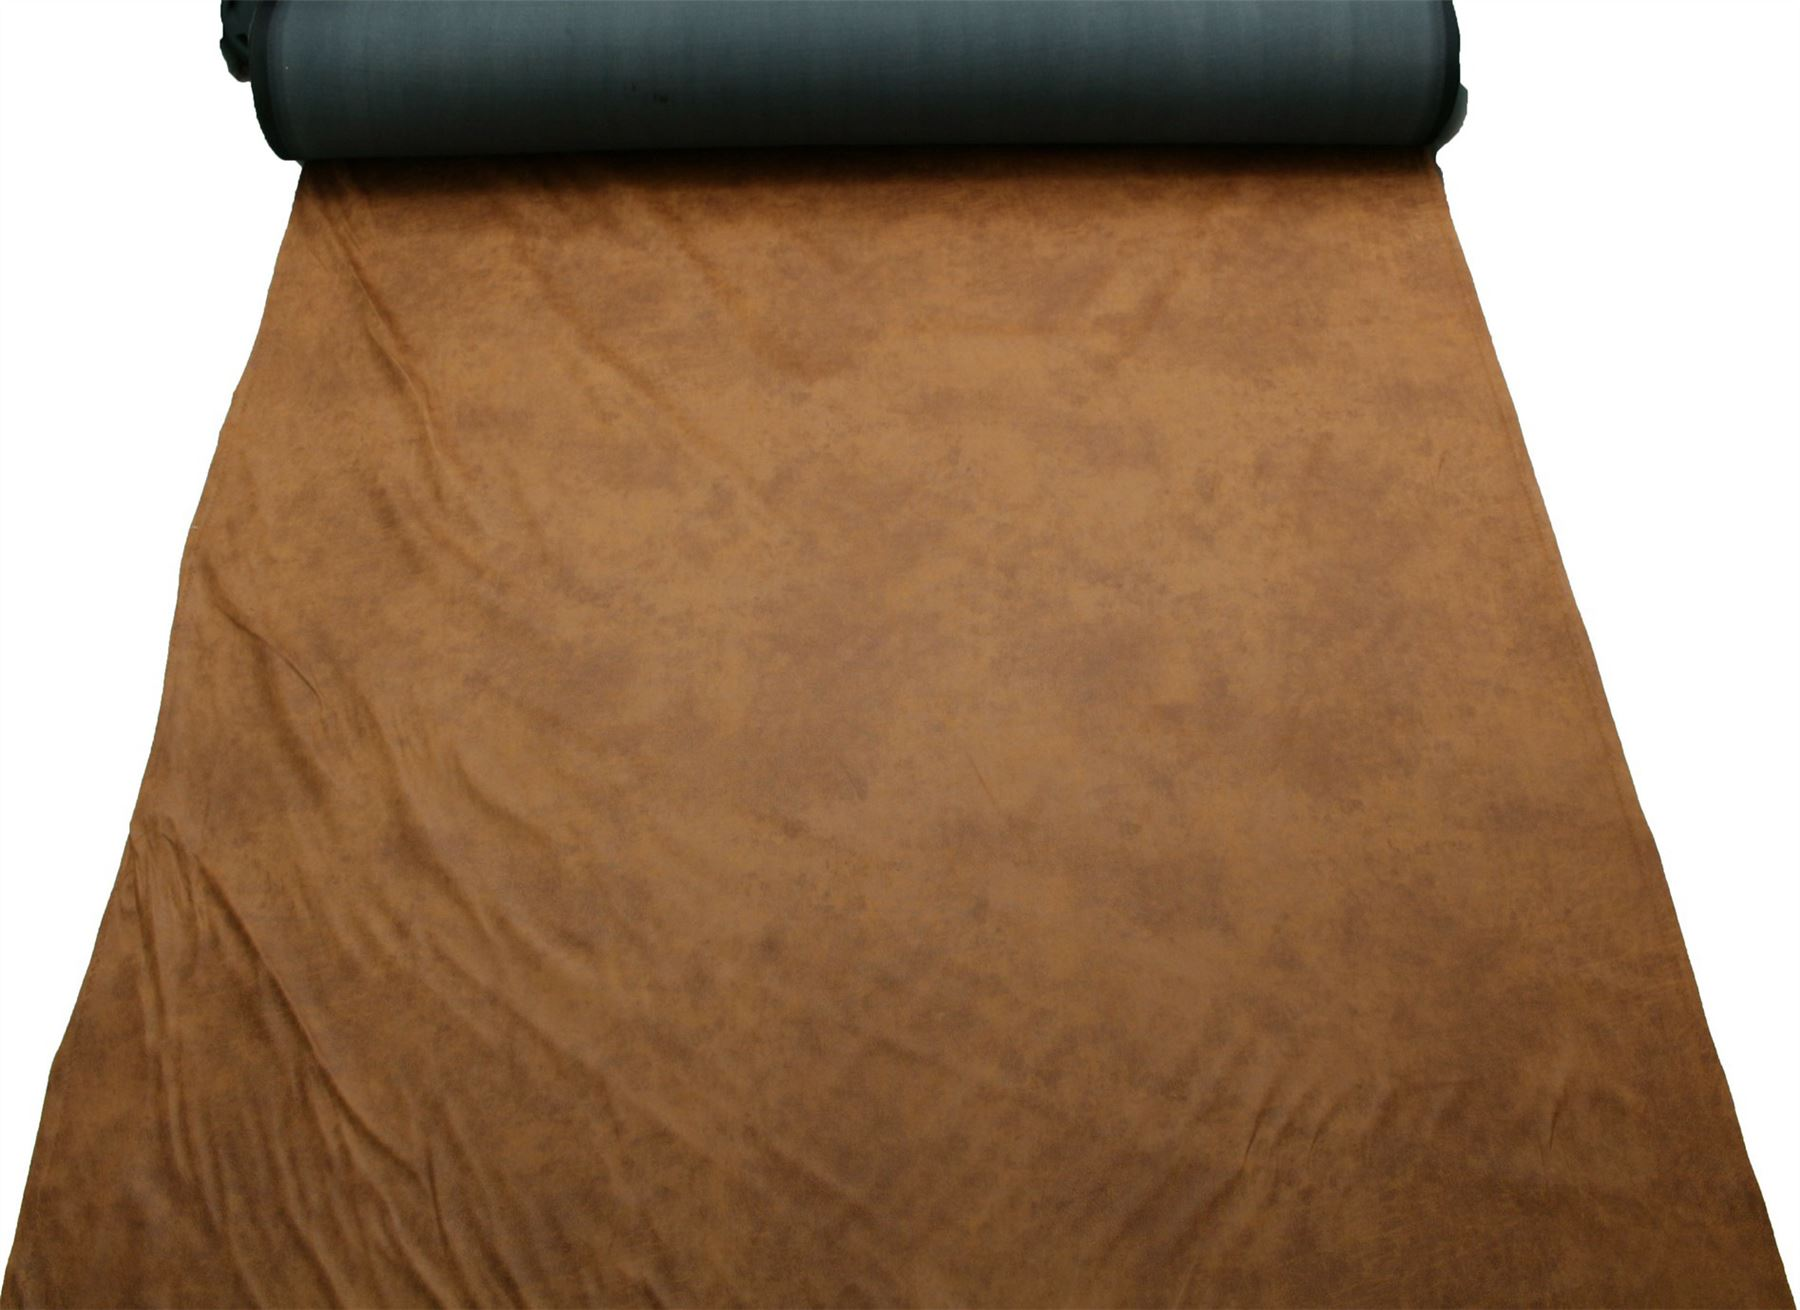 thumbnail 35 - AGED BROWN DISTRESSED ANTIQUED SUEDE FAUX LEATHER LEATHERETTE UPHOLSTERY FABRIC